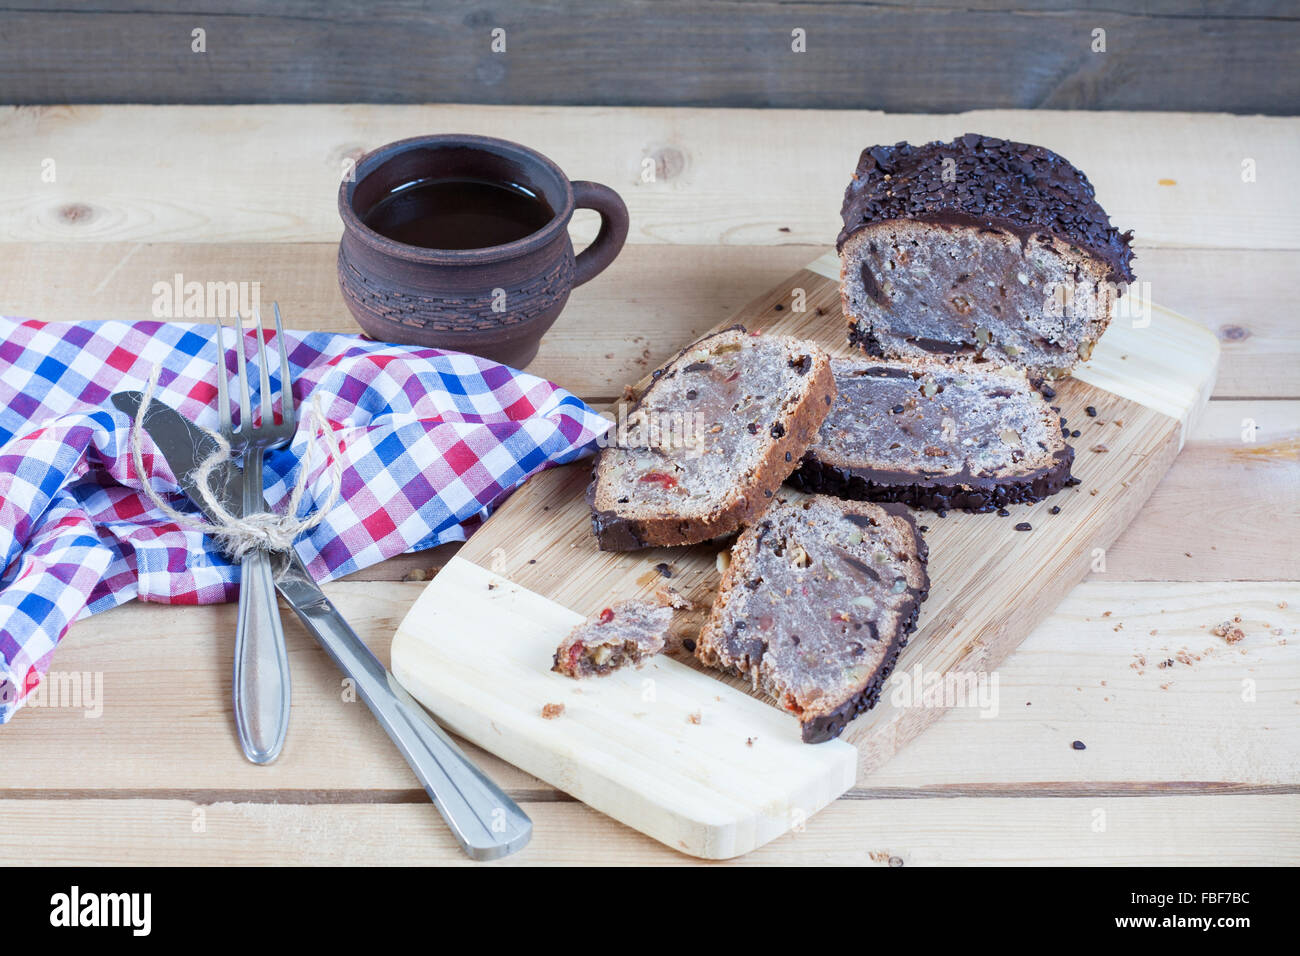 Stollen traditional German Christmas yeast cake with raisins served with a cup of coffee decorated with tablecloth - Stock Image